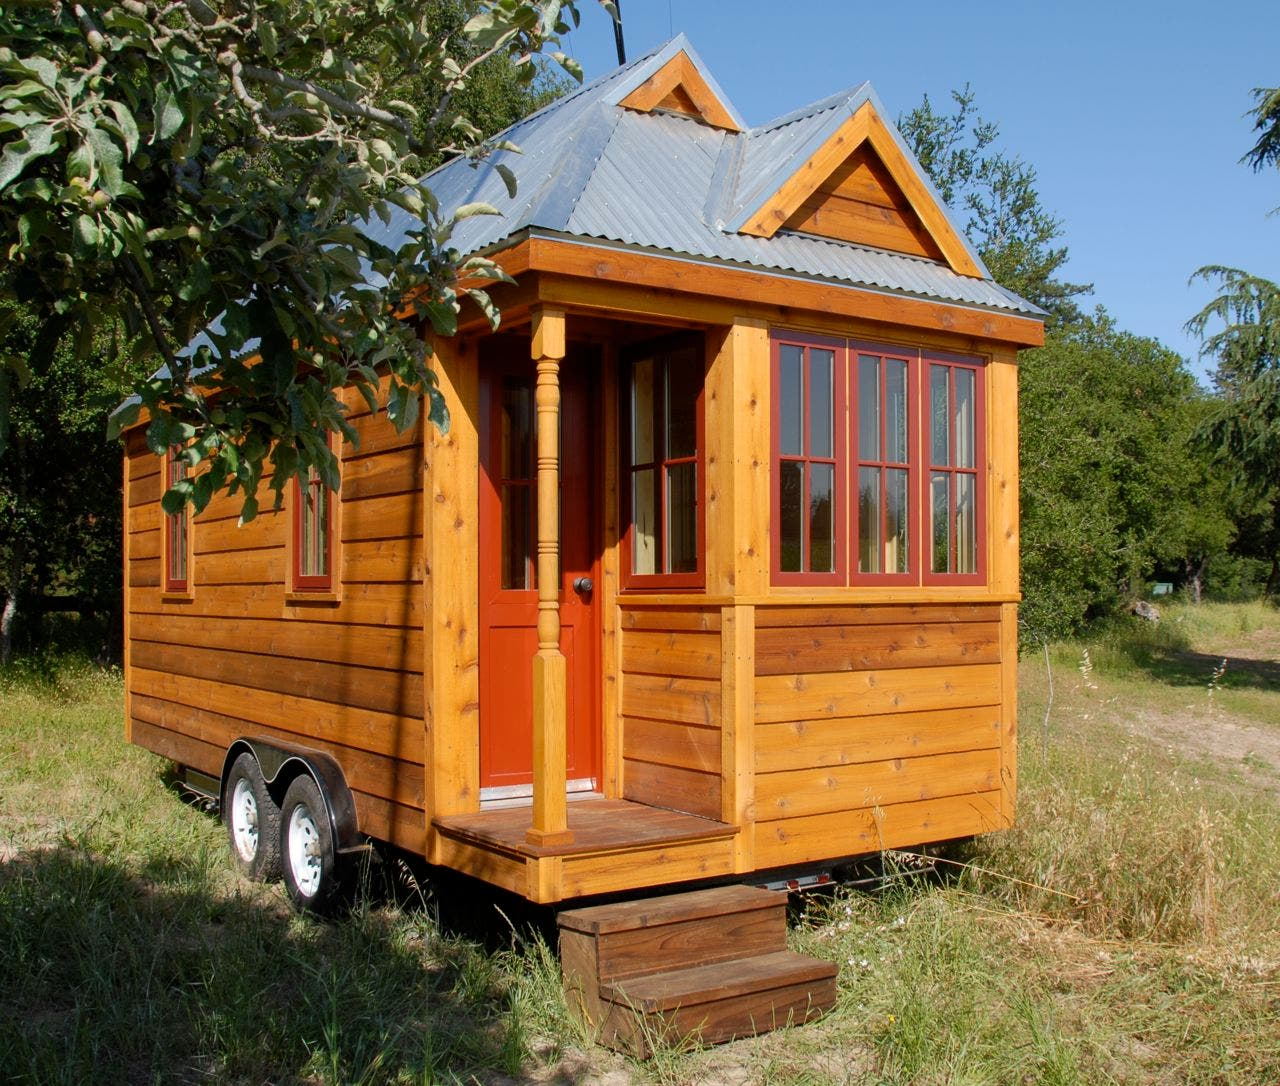 Fencl finale for Tiny house pictures and plans